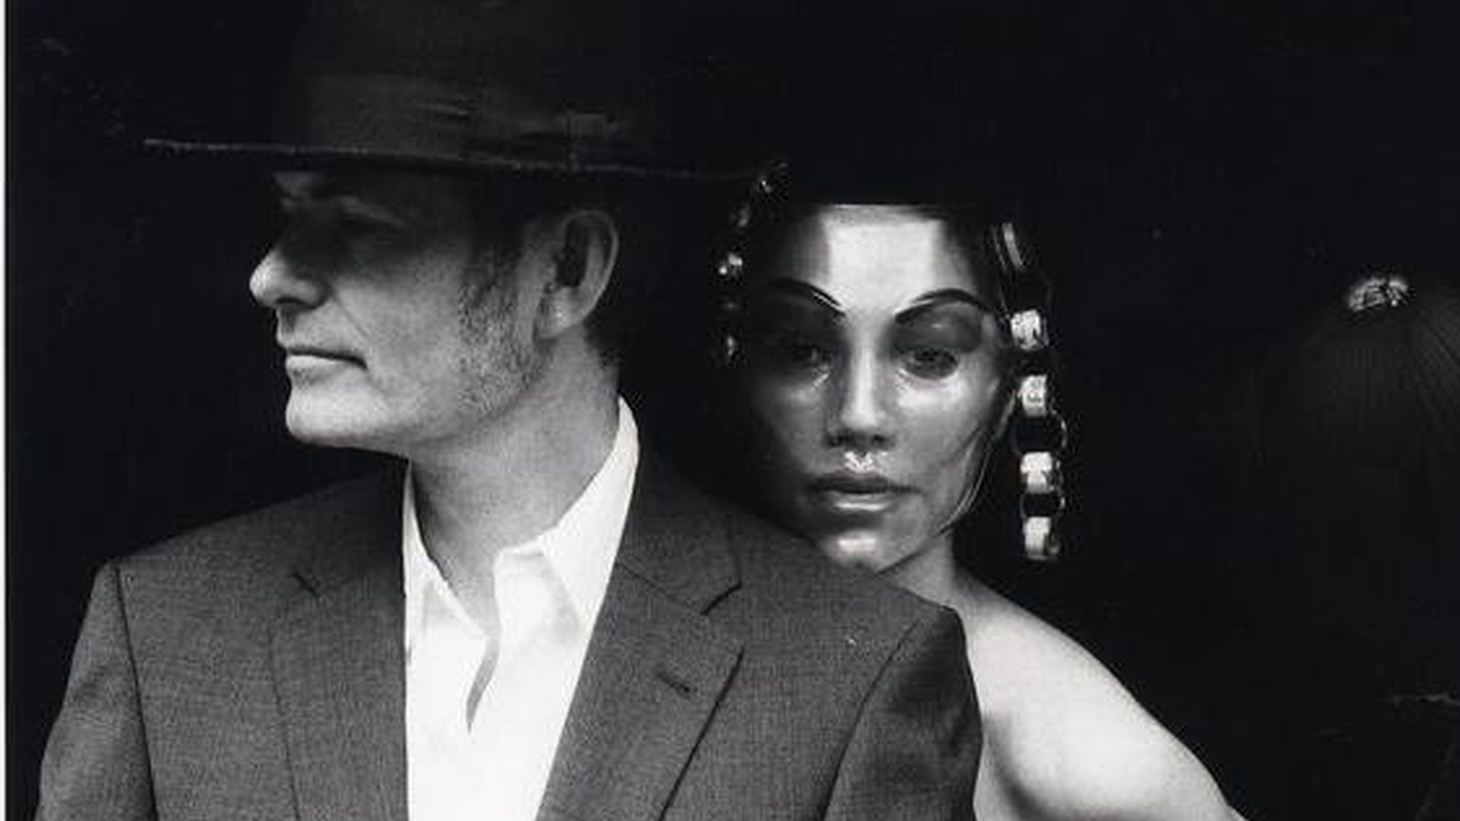 PJ Harvey and John Parish perform live on Morning Becomes Eclectic from Austin, Texas, as we broadcast from the music conference, South-By-Southwest at 11:15am.